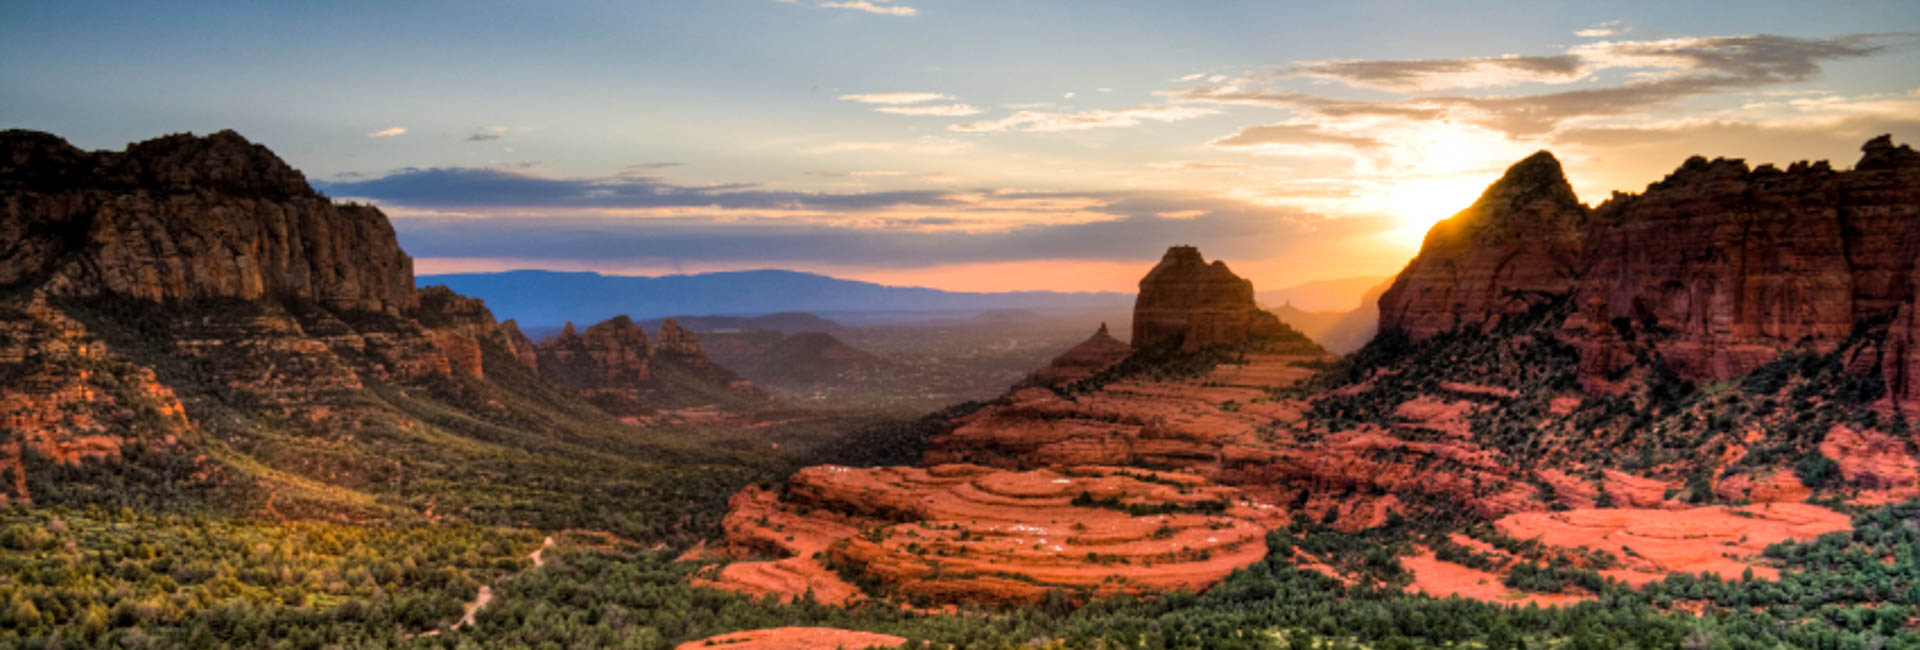 Sunsets over Sedona light up the red rock scenery on this private guided hiking tour.